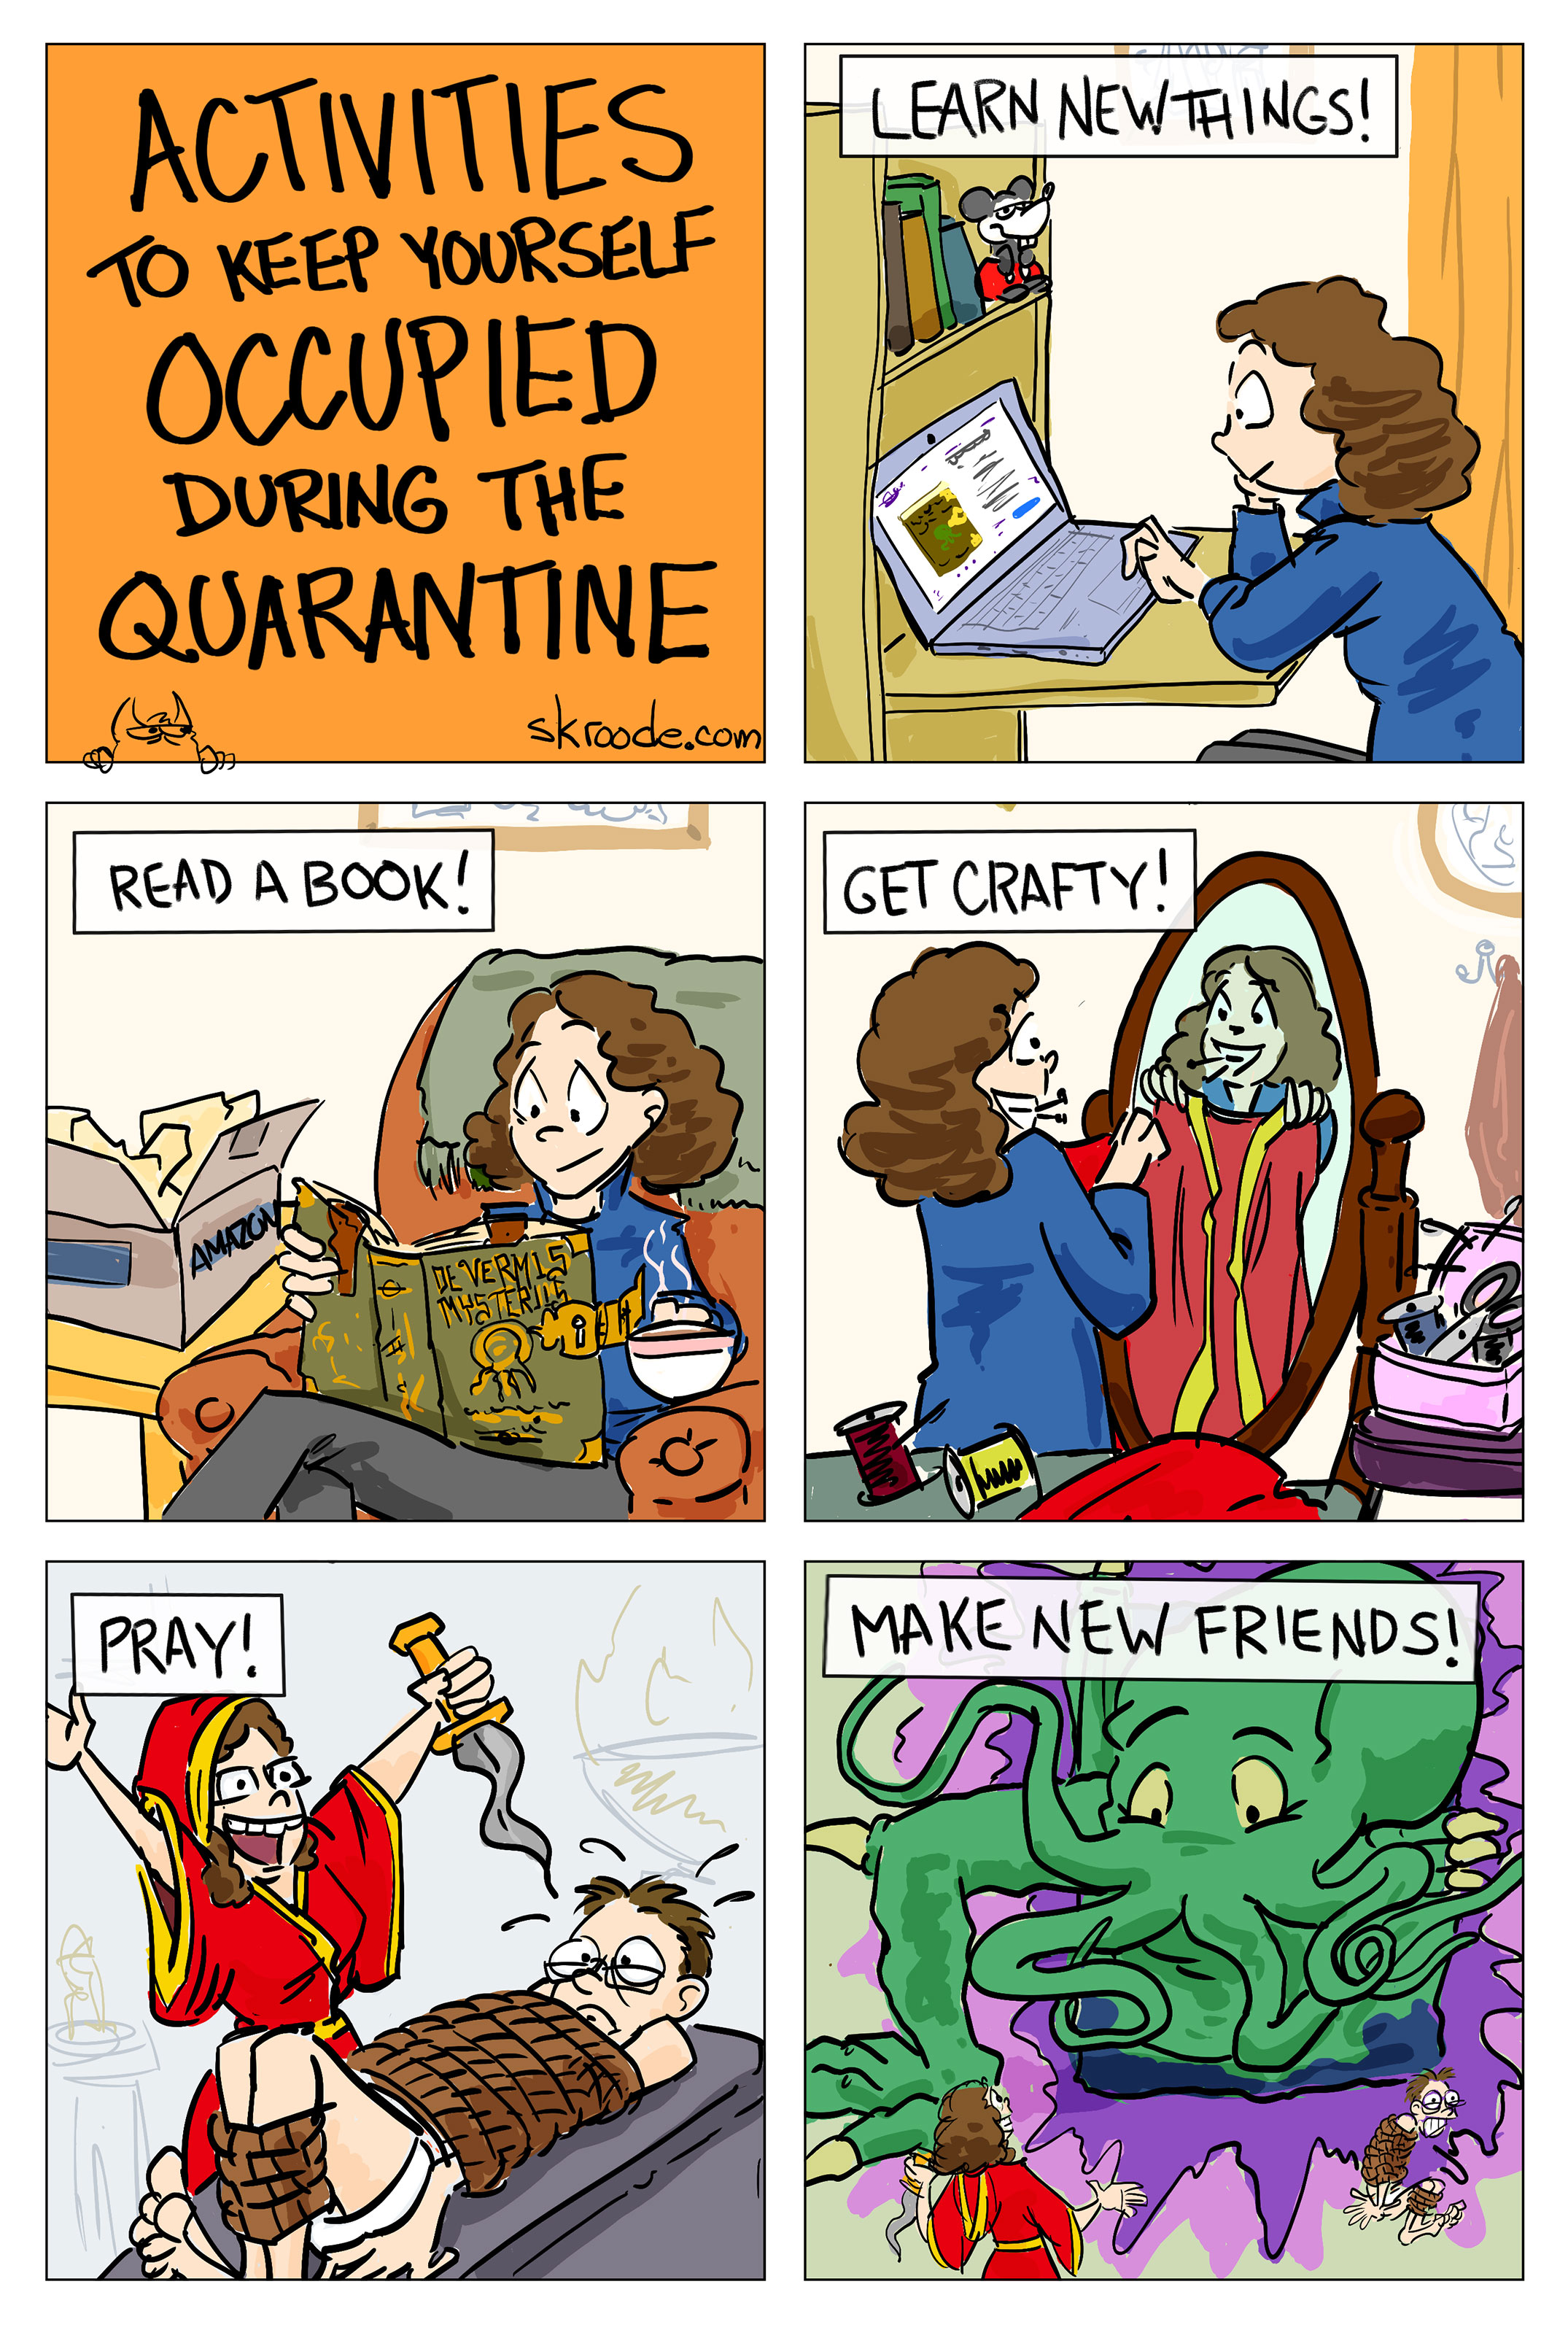 Activities to keep yourself occupied during the quarantine